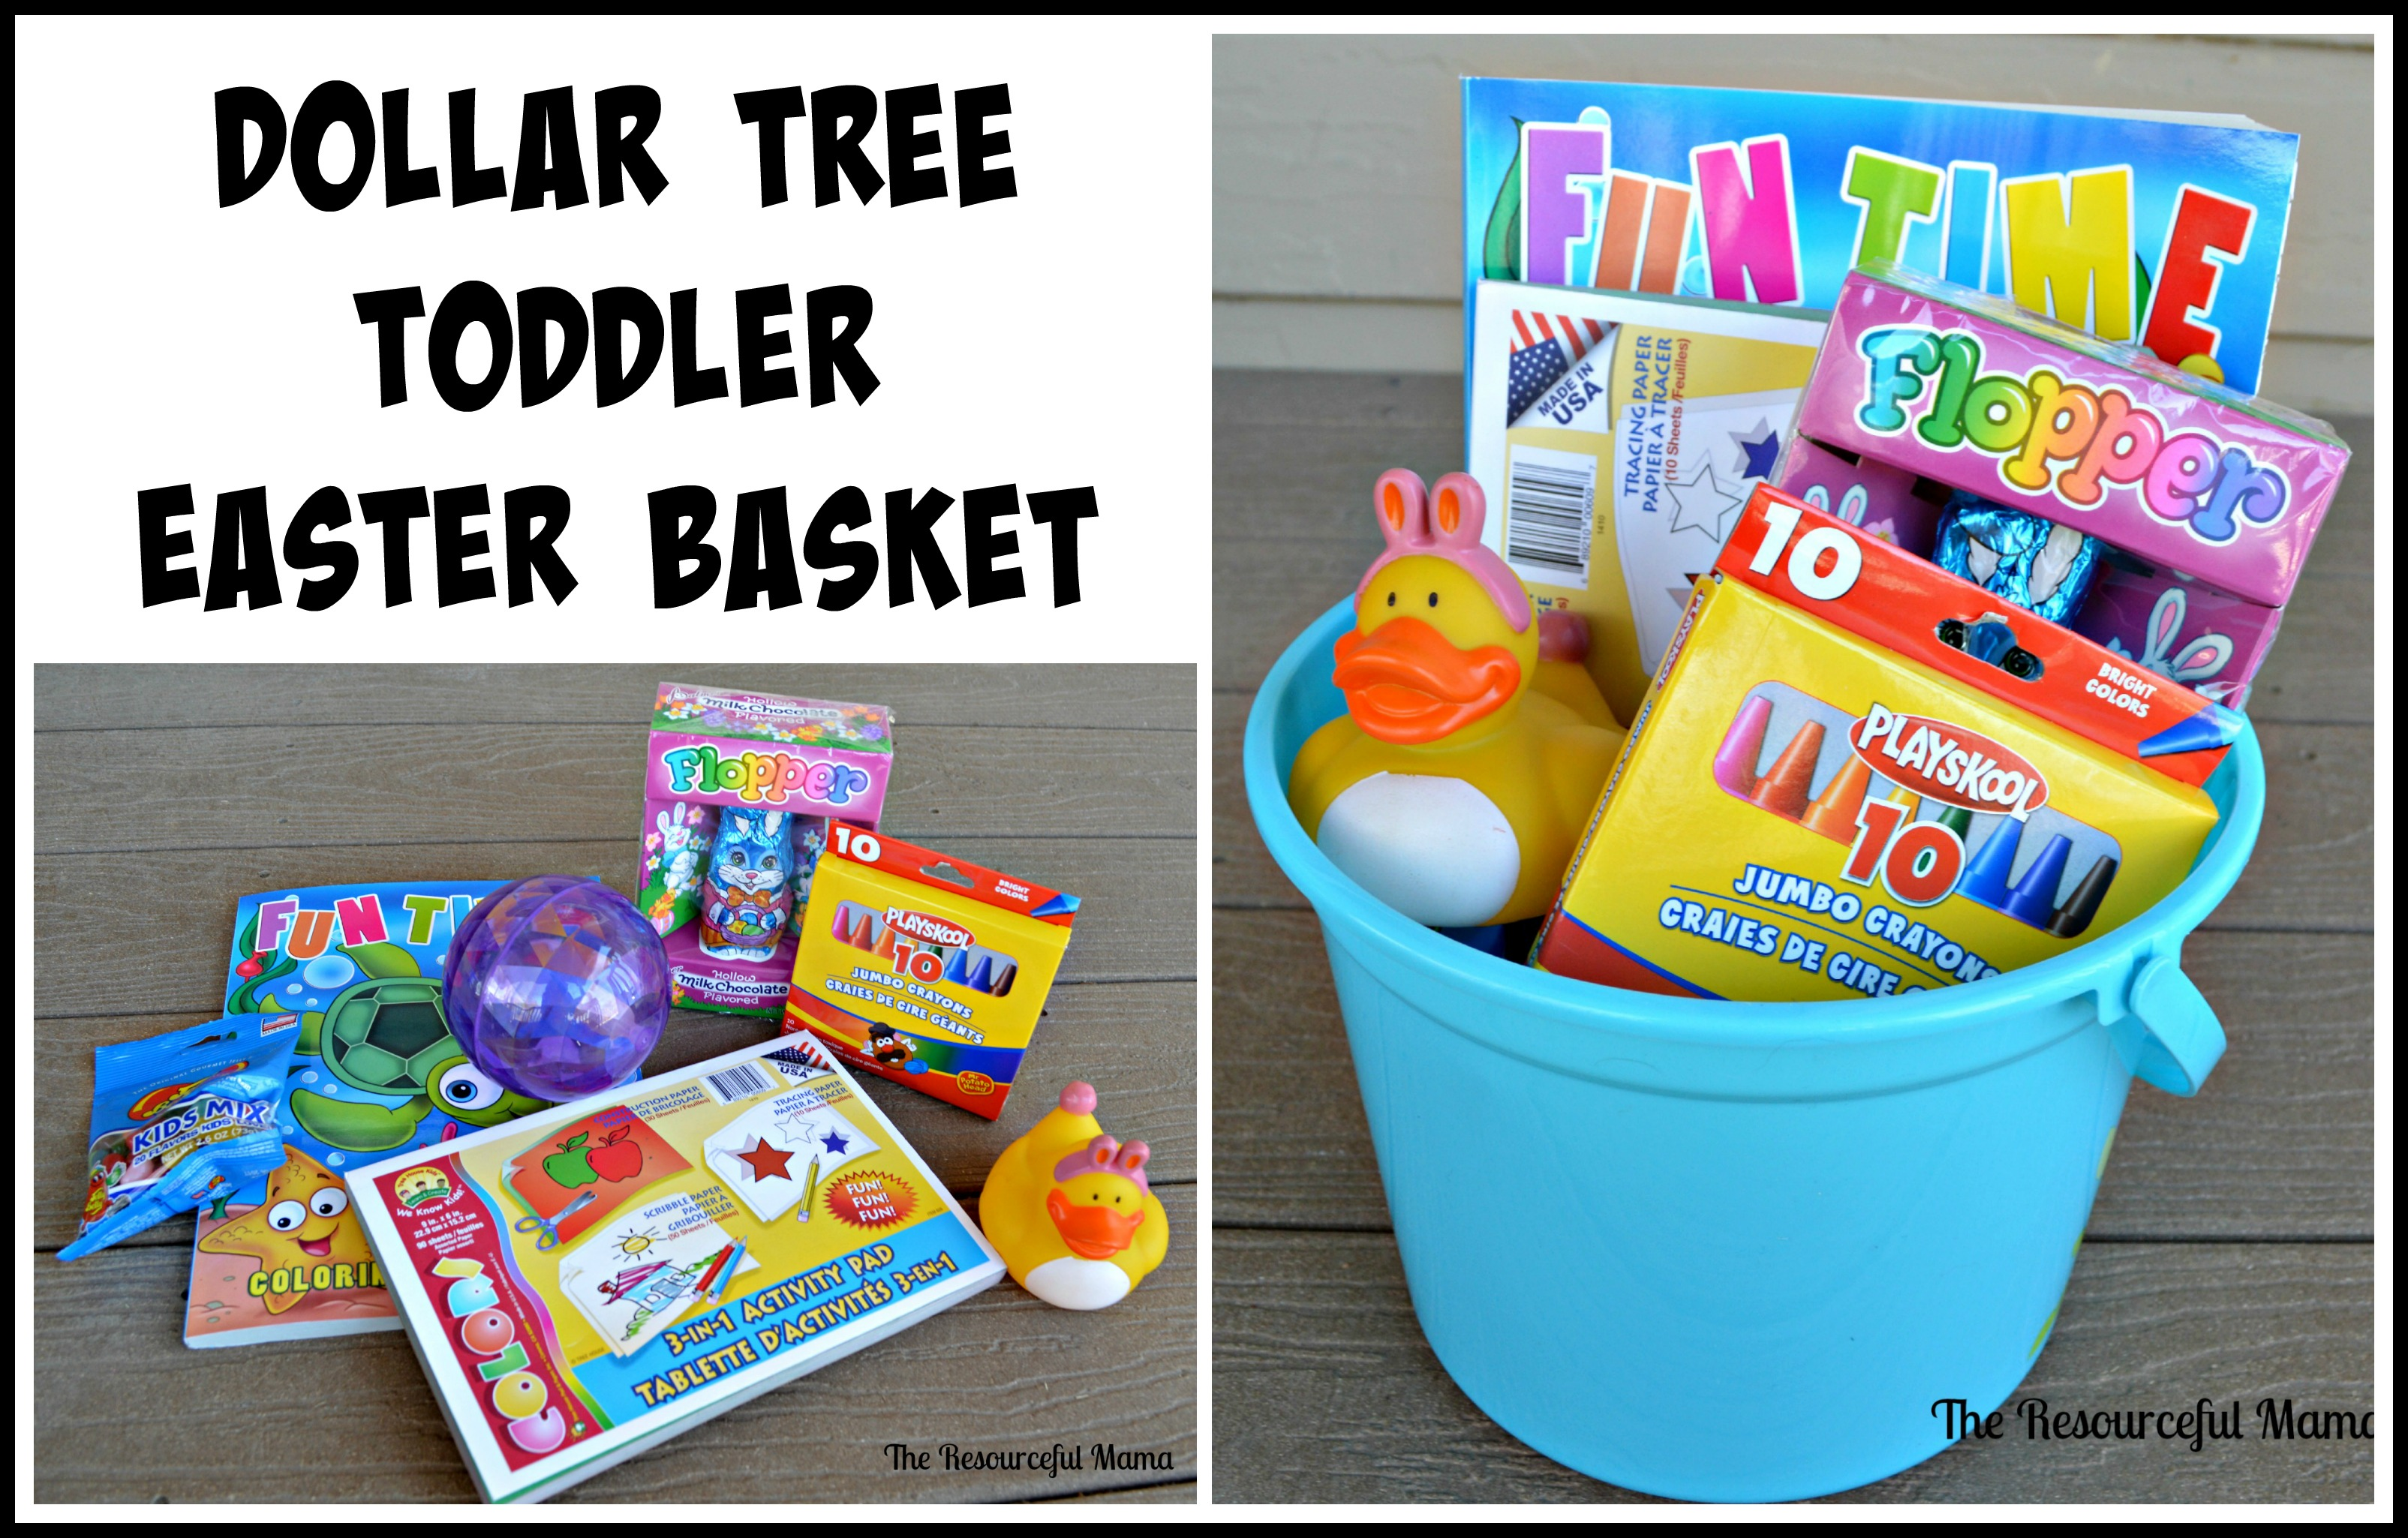 Dollar tree easter baskets the resourceful mama dollar tree easter basket toddler negle Images